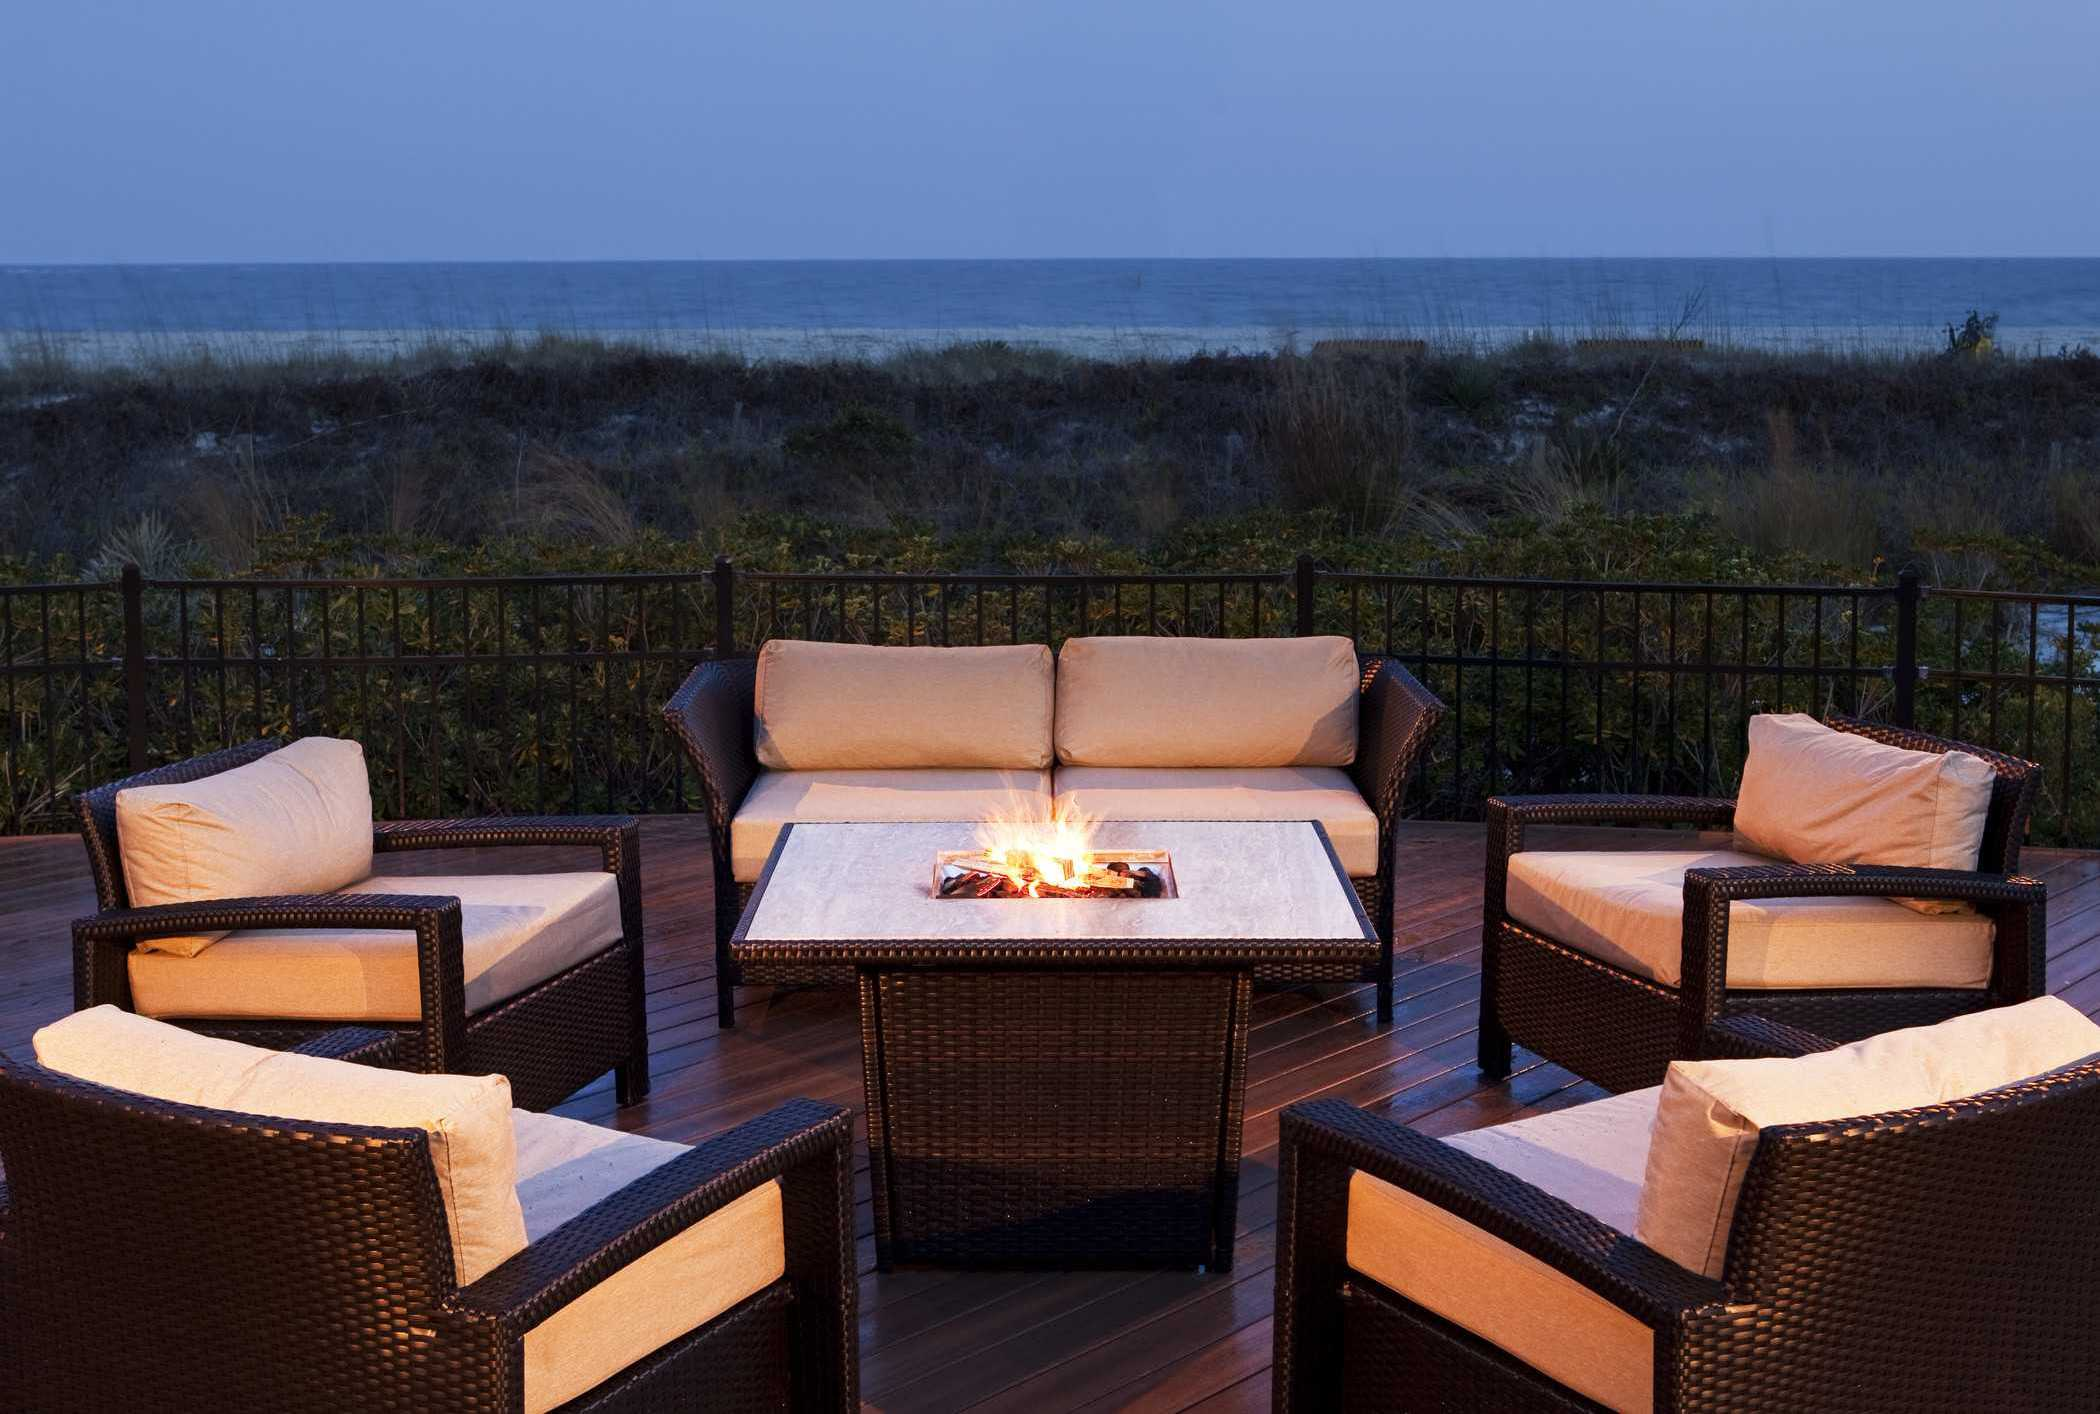 a bon fire on a patio next to the beach at dusk surrounded by chairs